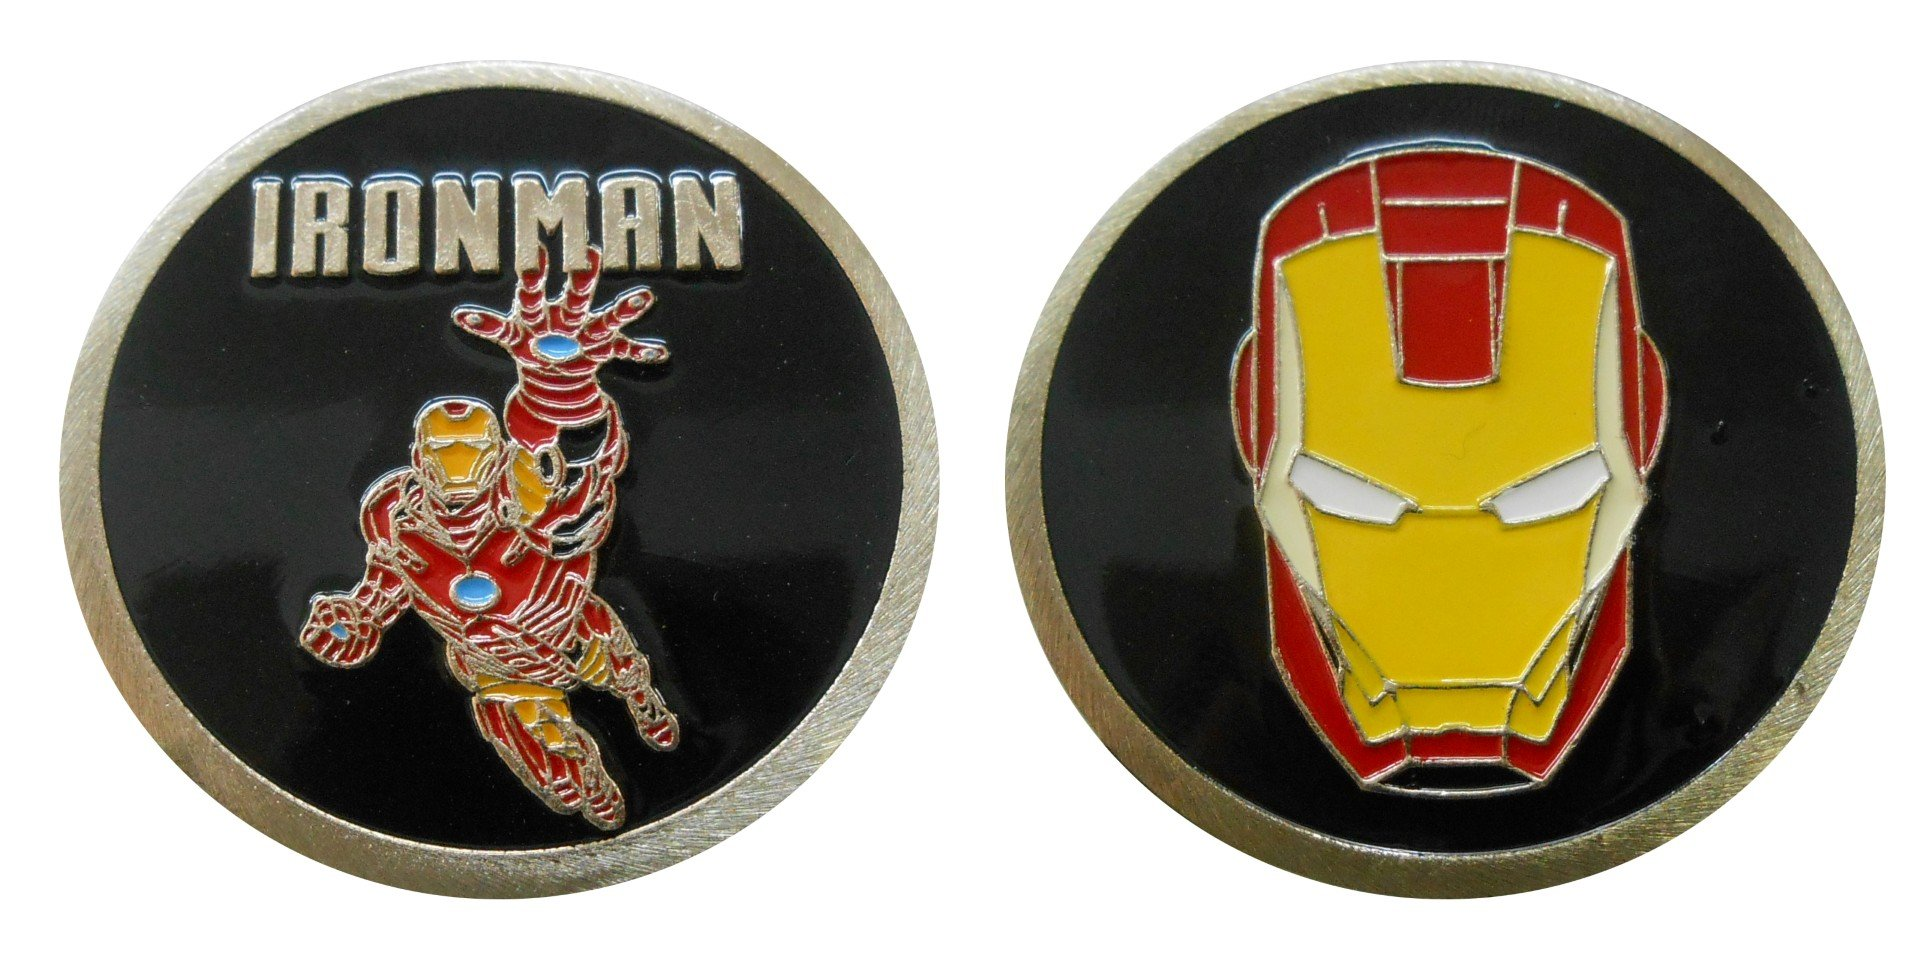 Ironman - Character Collectible Challenge Coin / Logo Poker / Lucky Chip